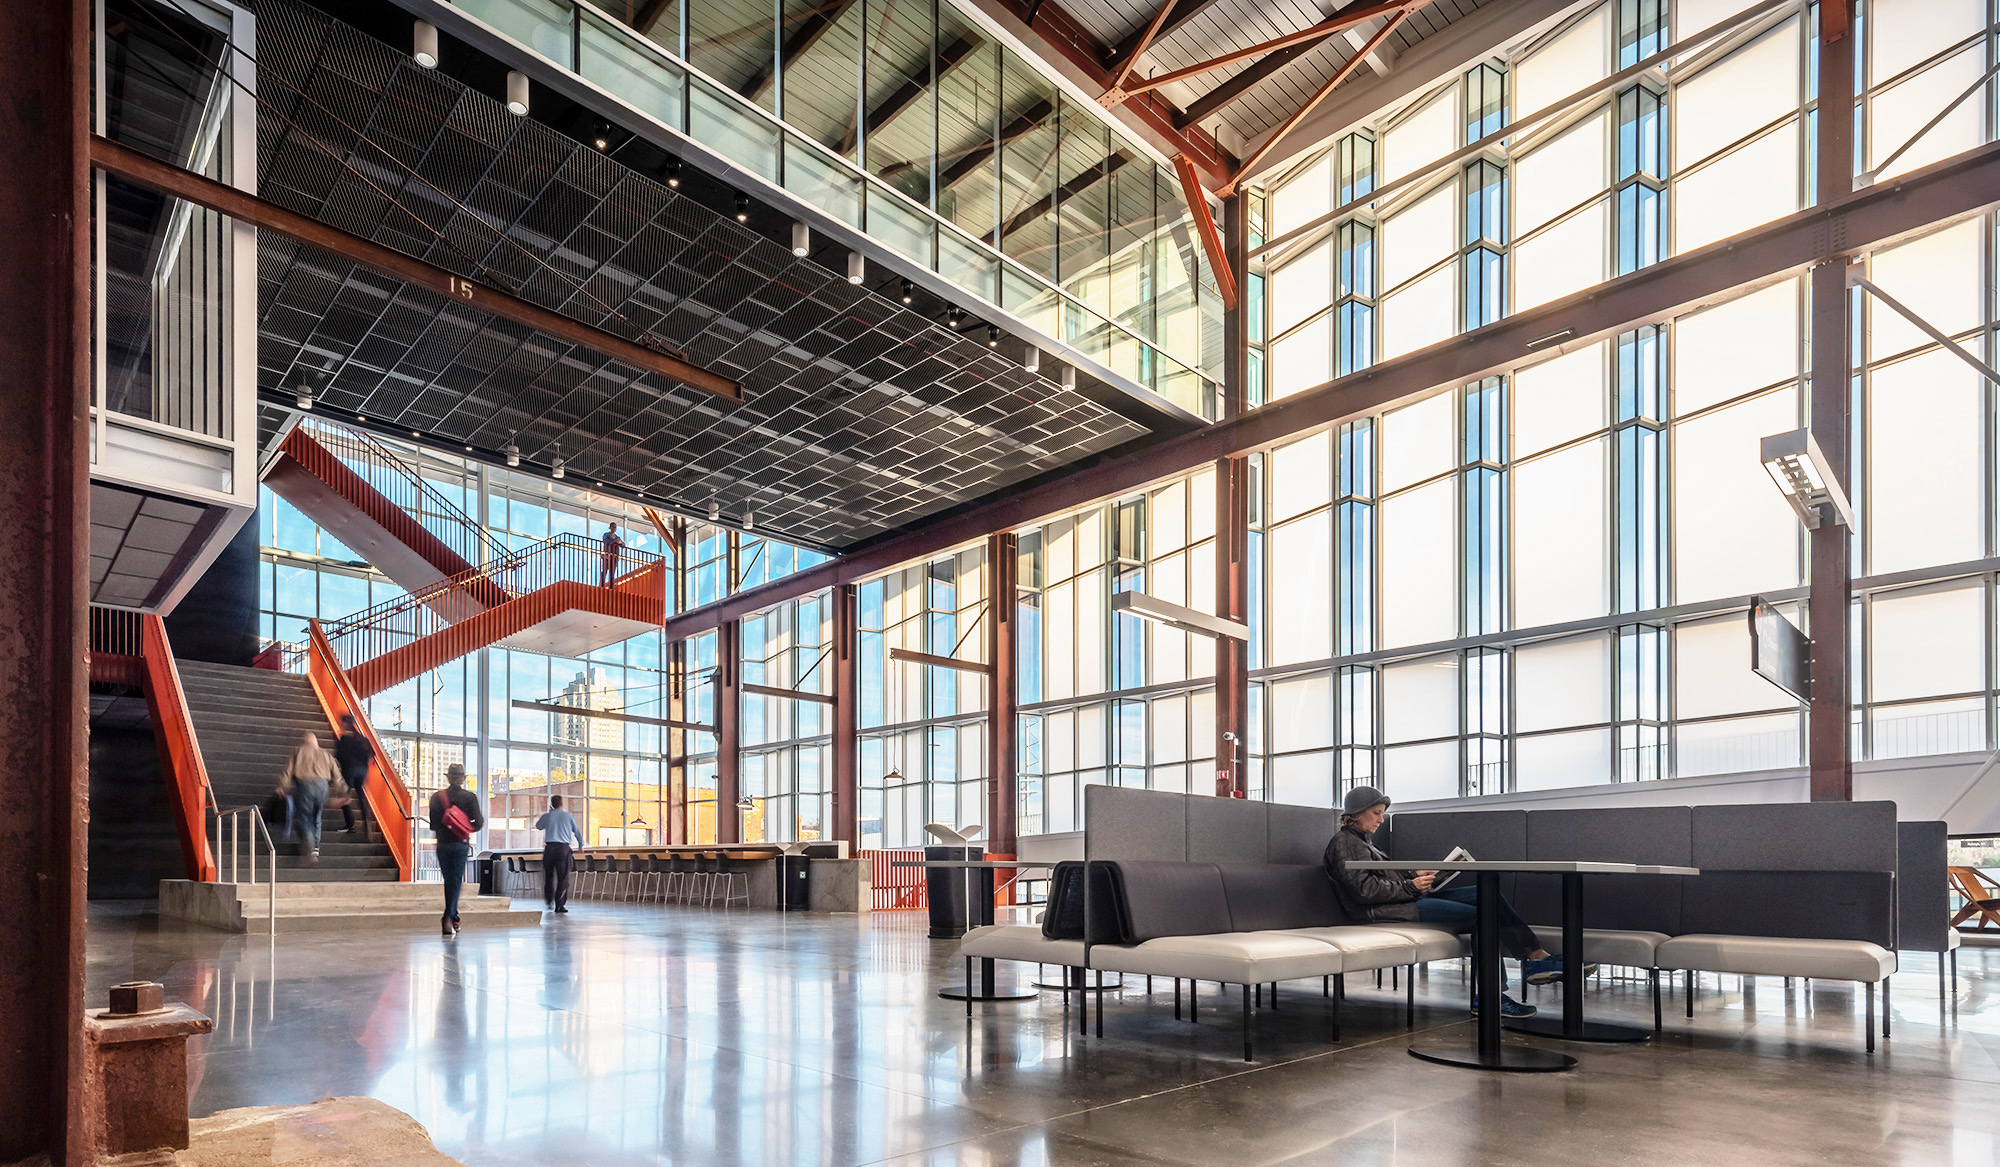 ClearShade Raleigh Union Station - Infill, Curtain Wall, Clerestory - Exterior glazing using ClearShade IGU - more light, better light, LEED credit, solar heat gain control